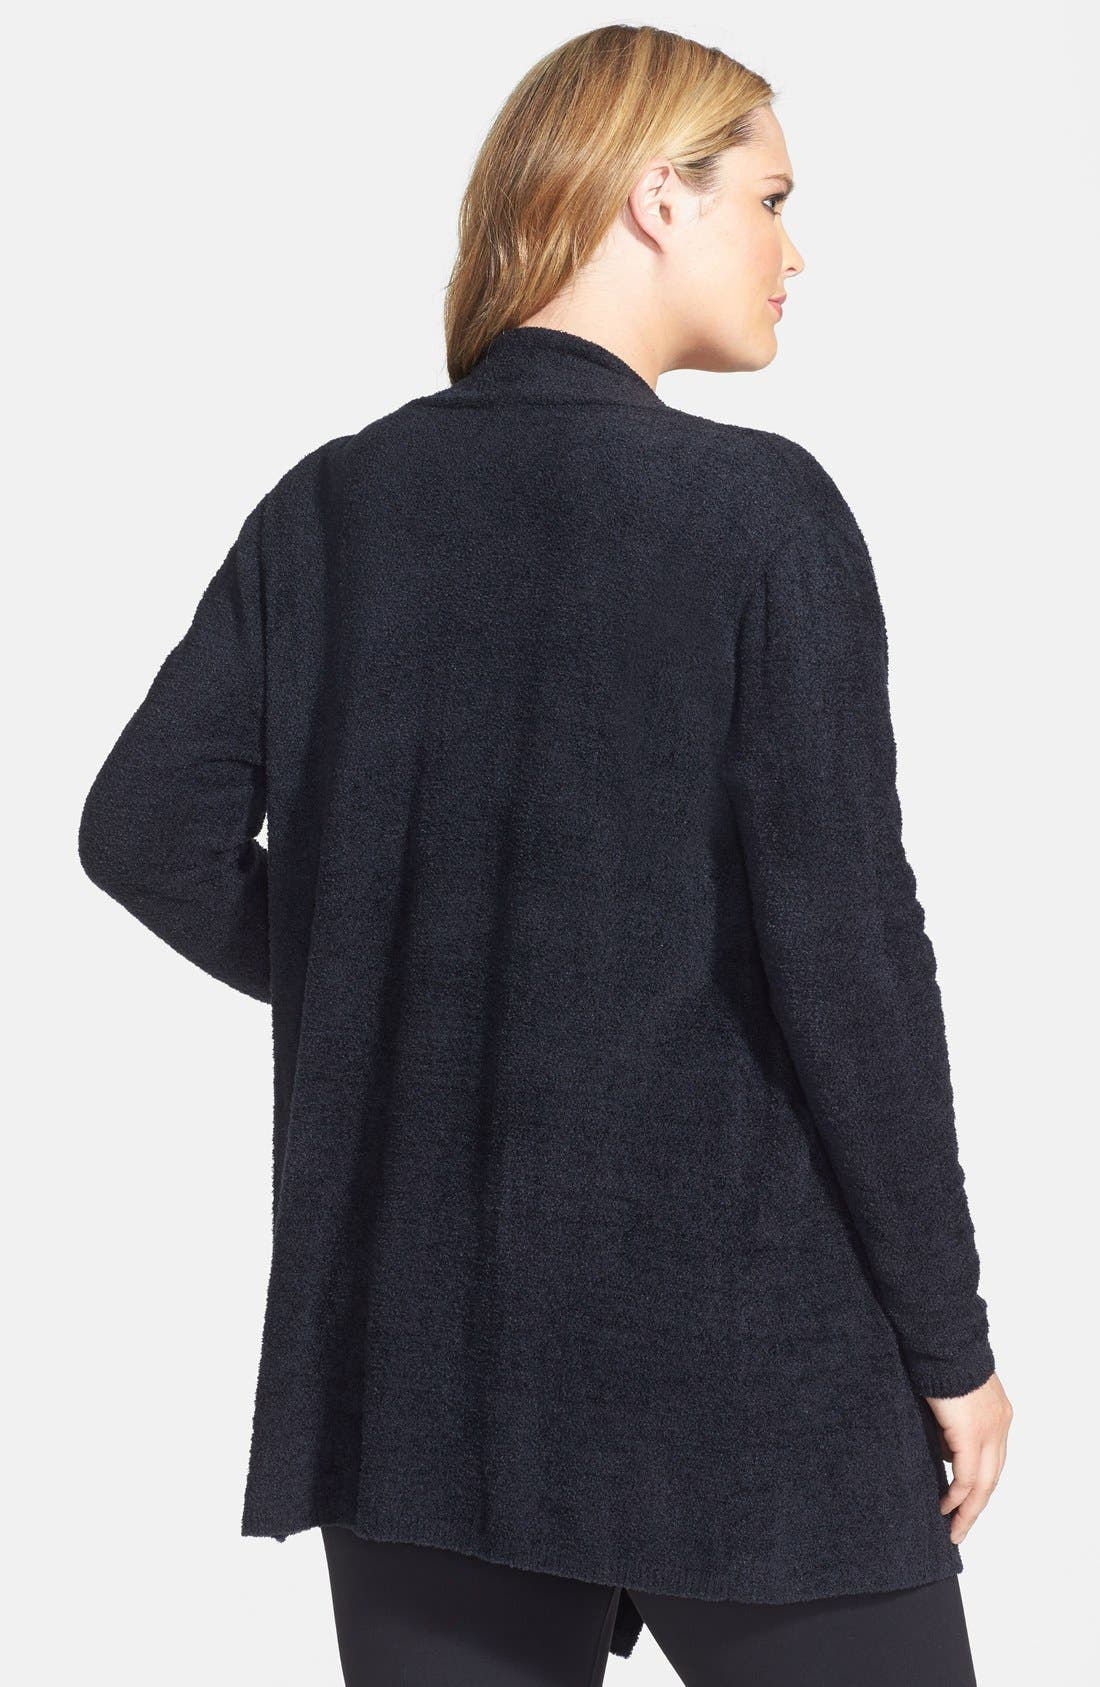 CozyChic Lite<sup>®</sup> Calypso Wrap Cardigan,                             Alternate thumbnail 7, color,                             001